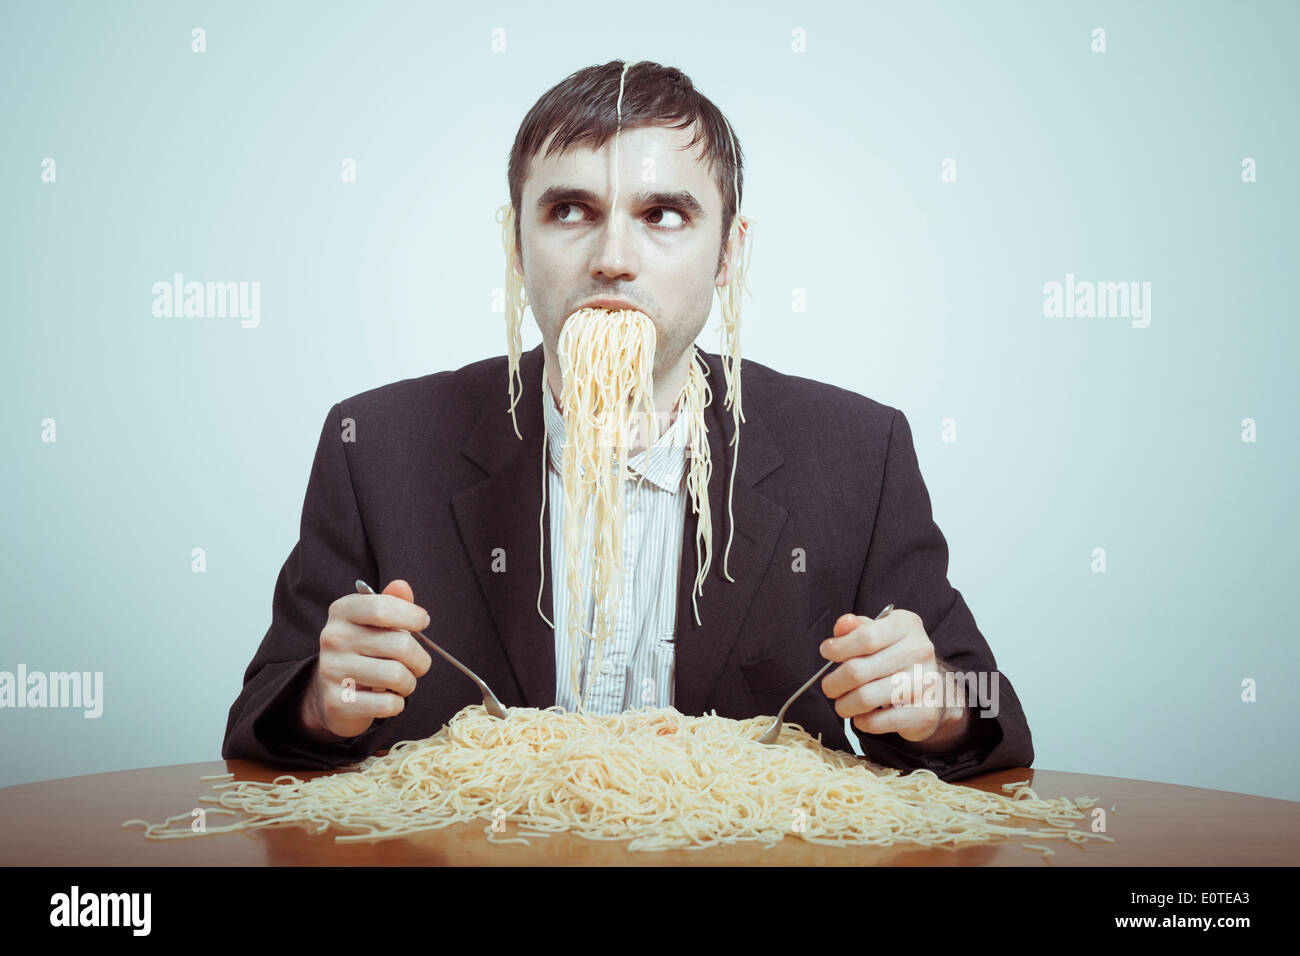 Overeating and consumerism concept. Silly nasty businessman eating pasta. - Stock Image